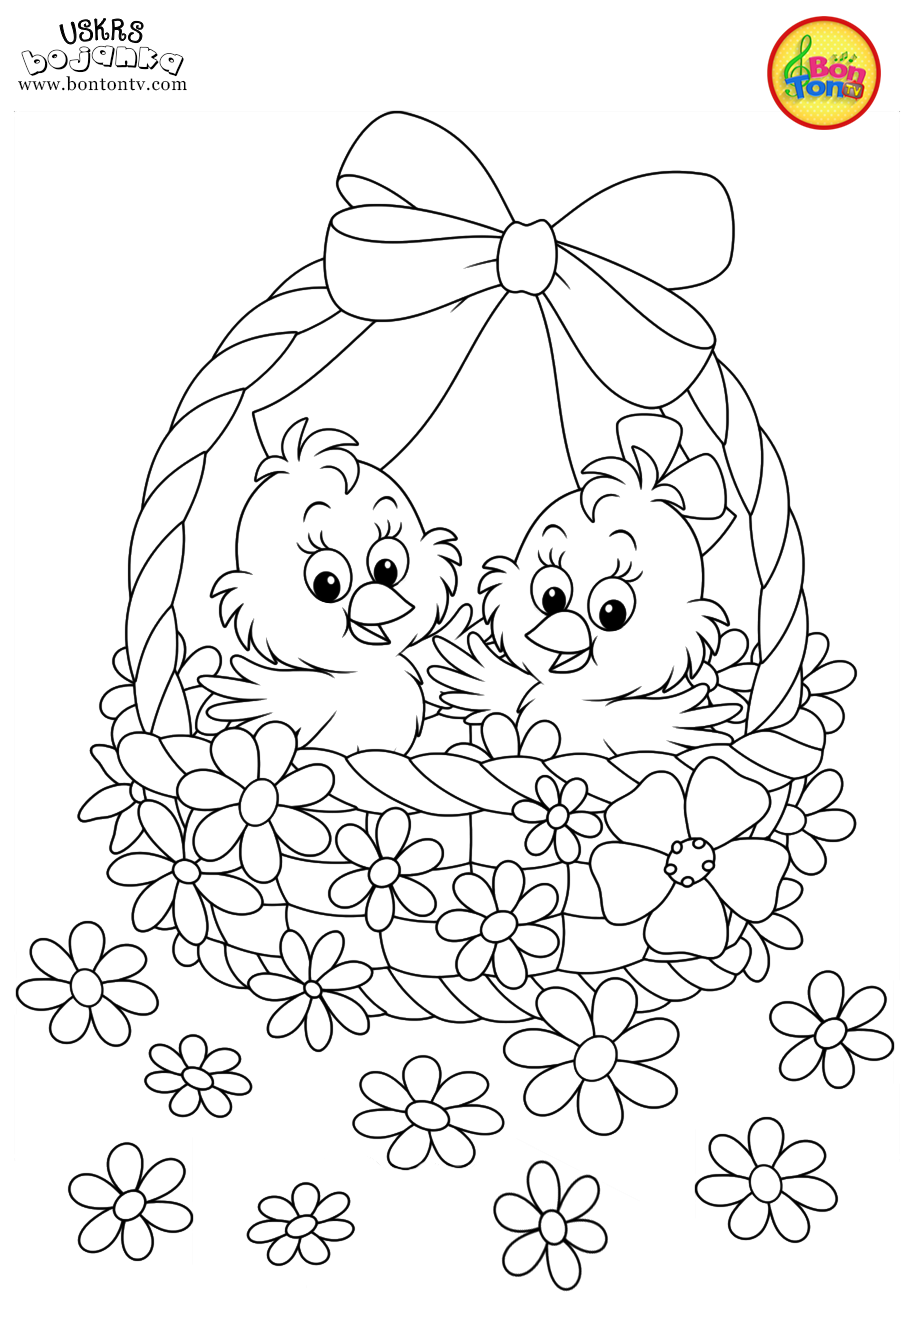 Easter coloring pages uskrs bojanke za djecu free printables easter bunny eggs chicks and more on bonton tv coloring books uskrs bojanke easter